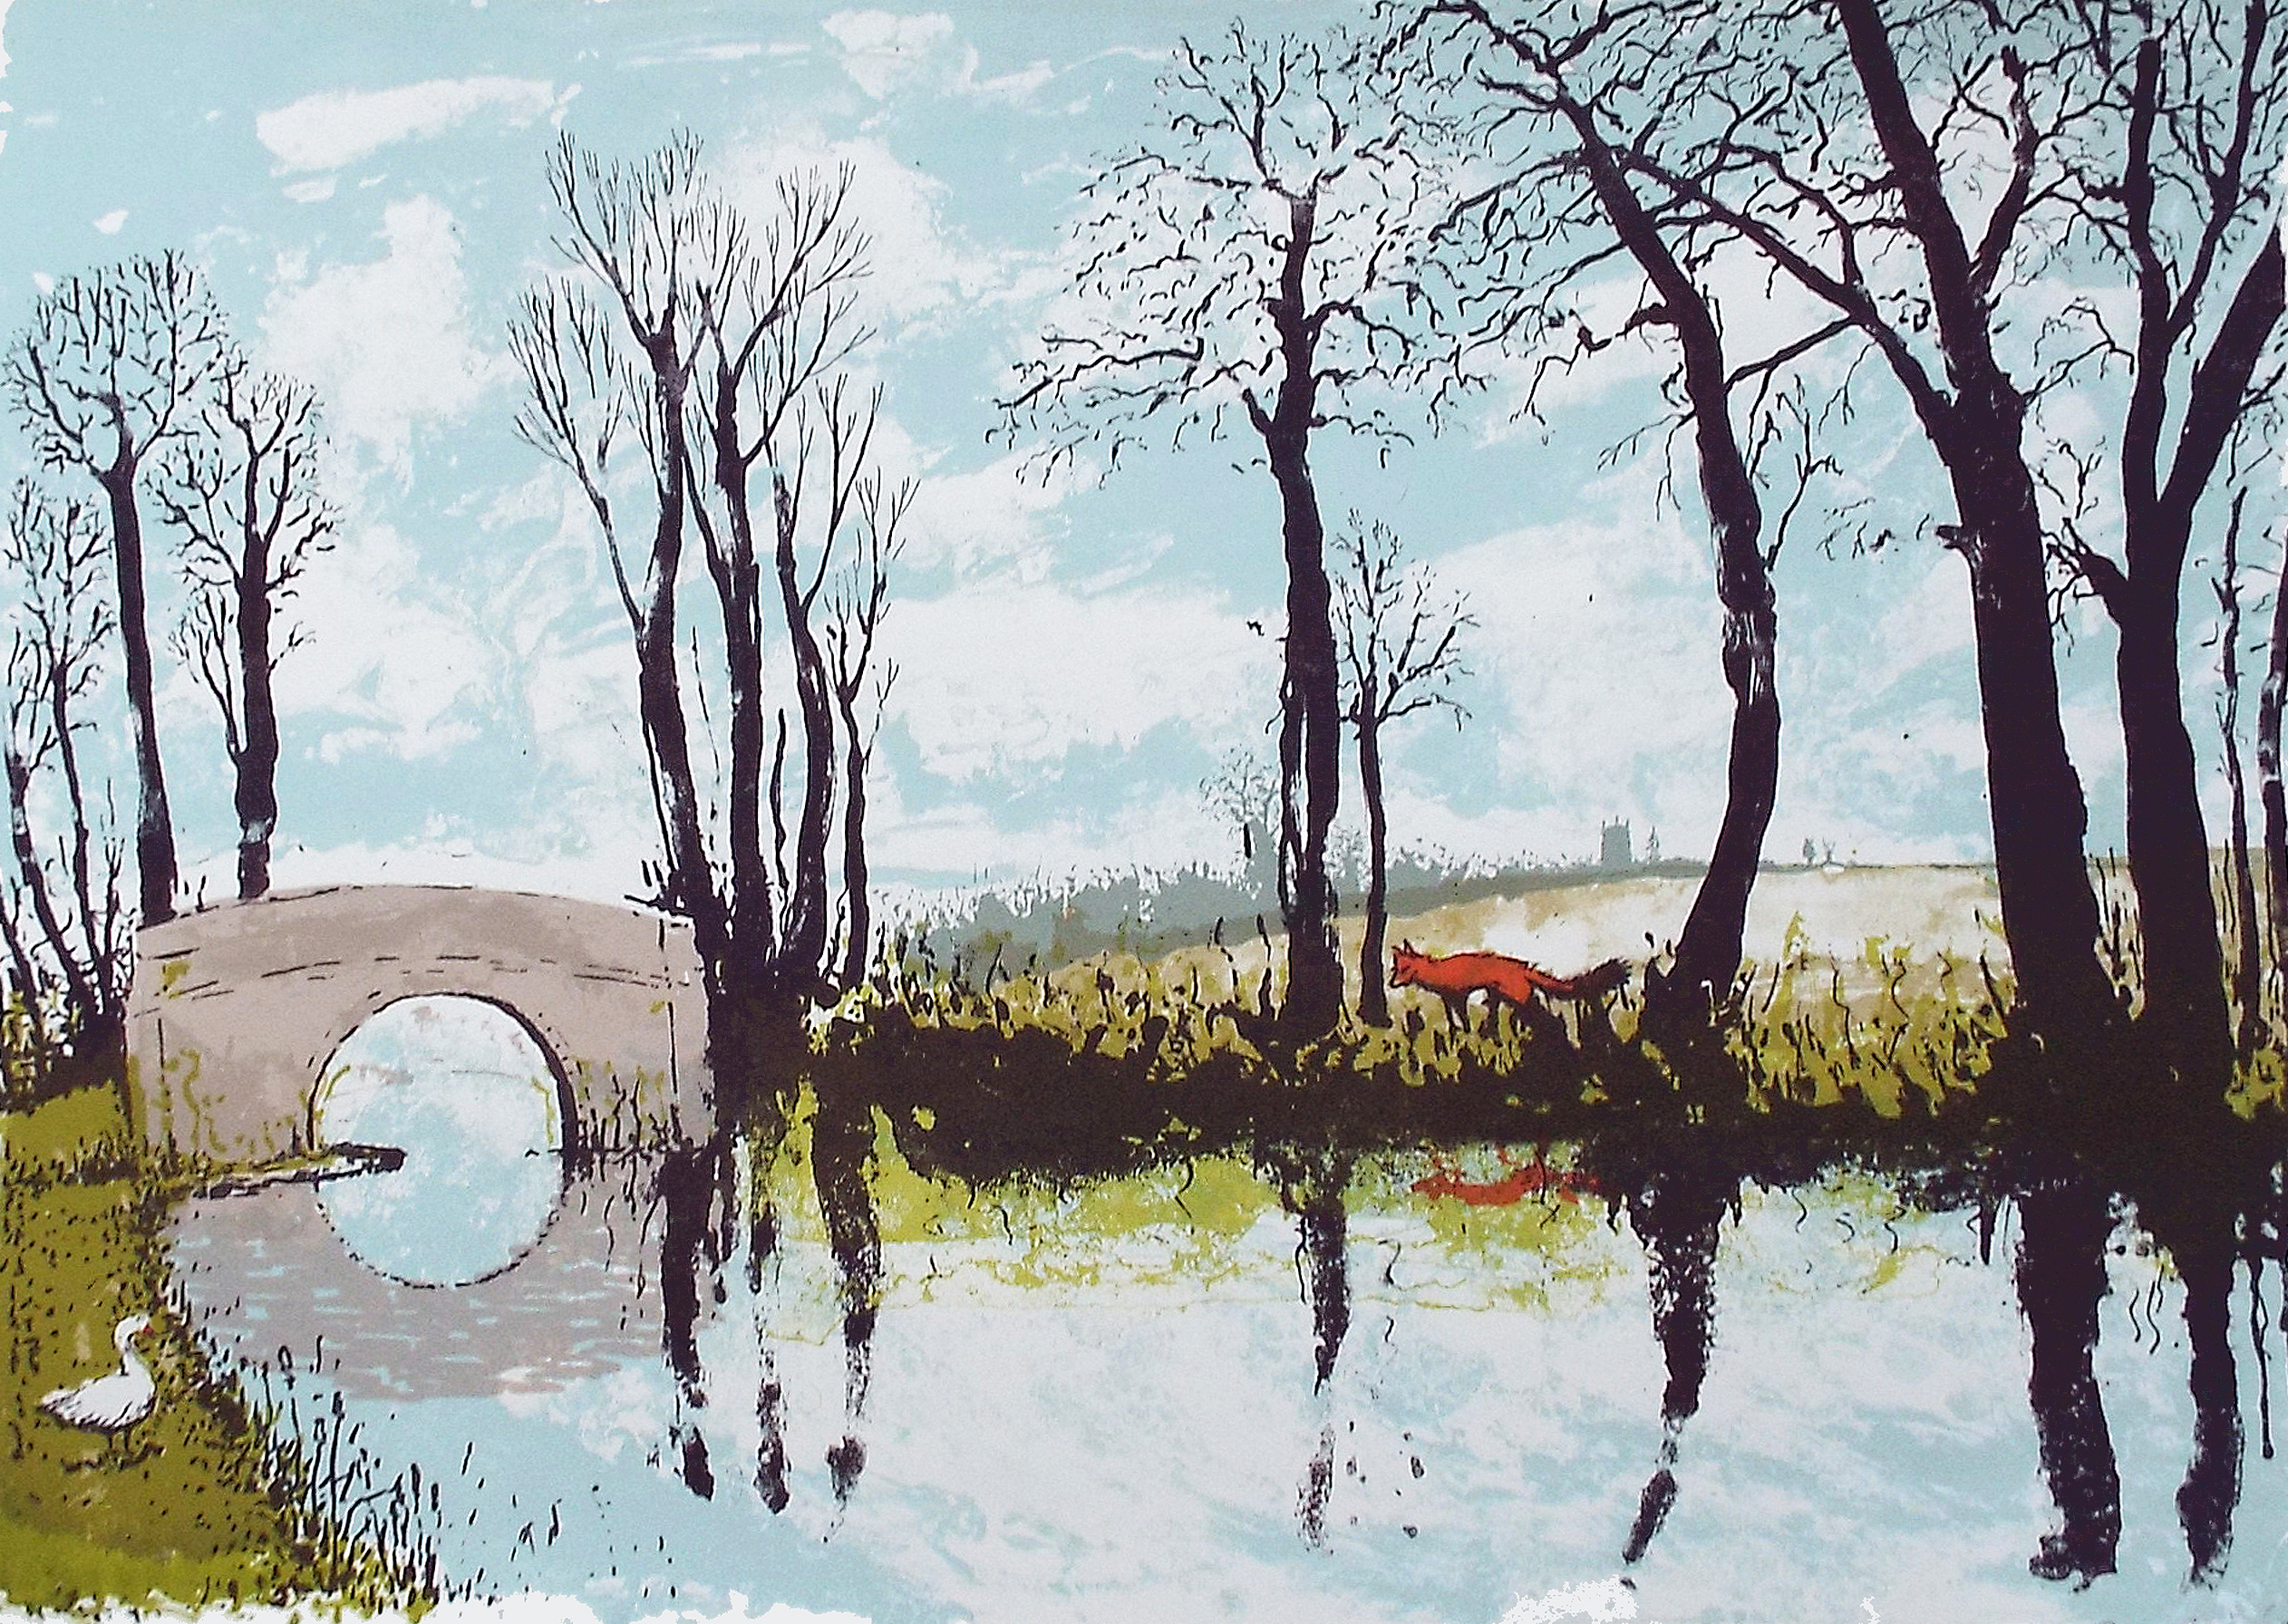 Tim Southall, The Fox and Goose, Wychwood Art